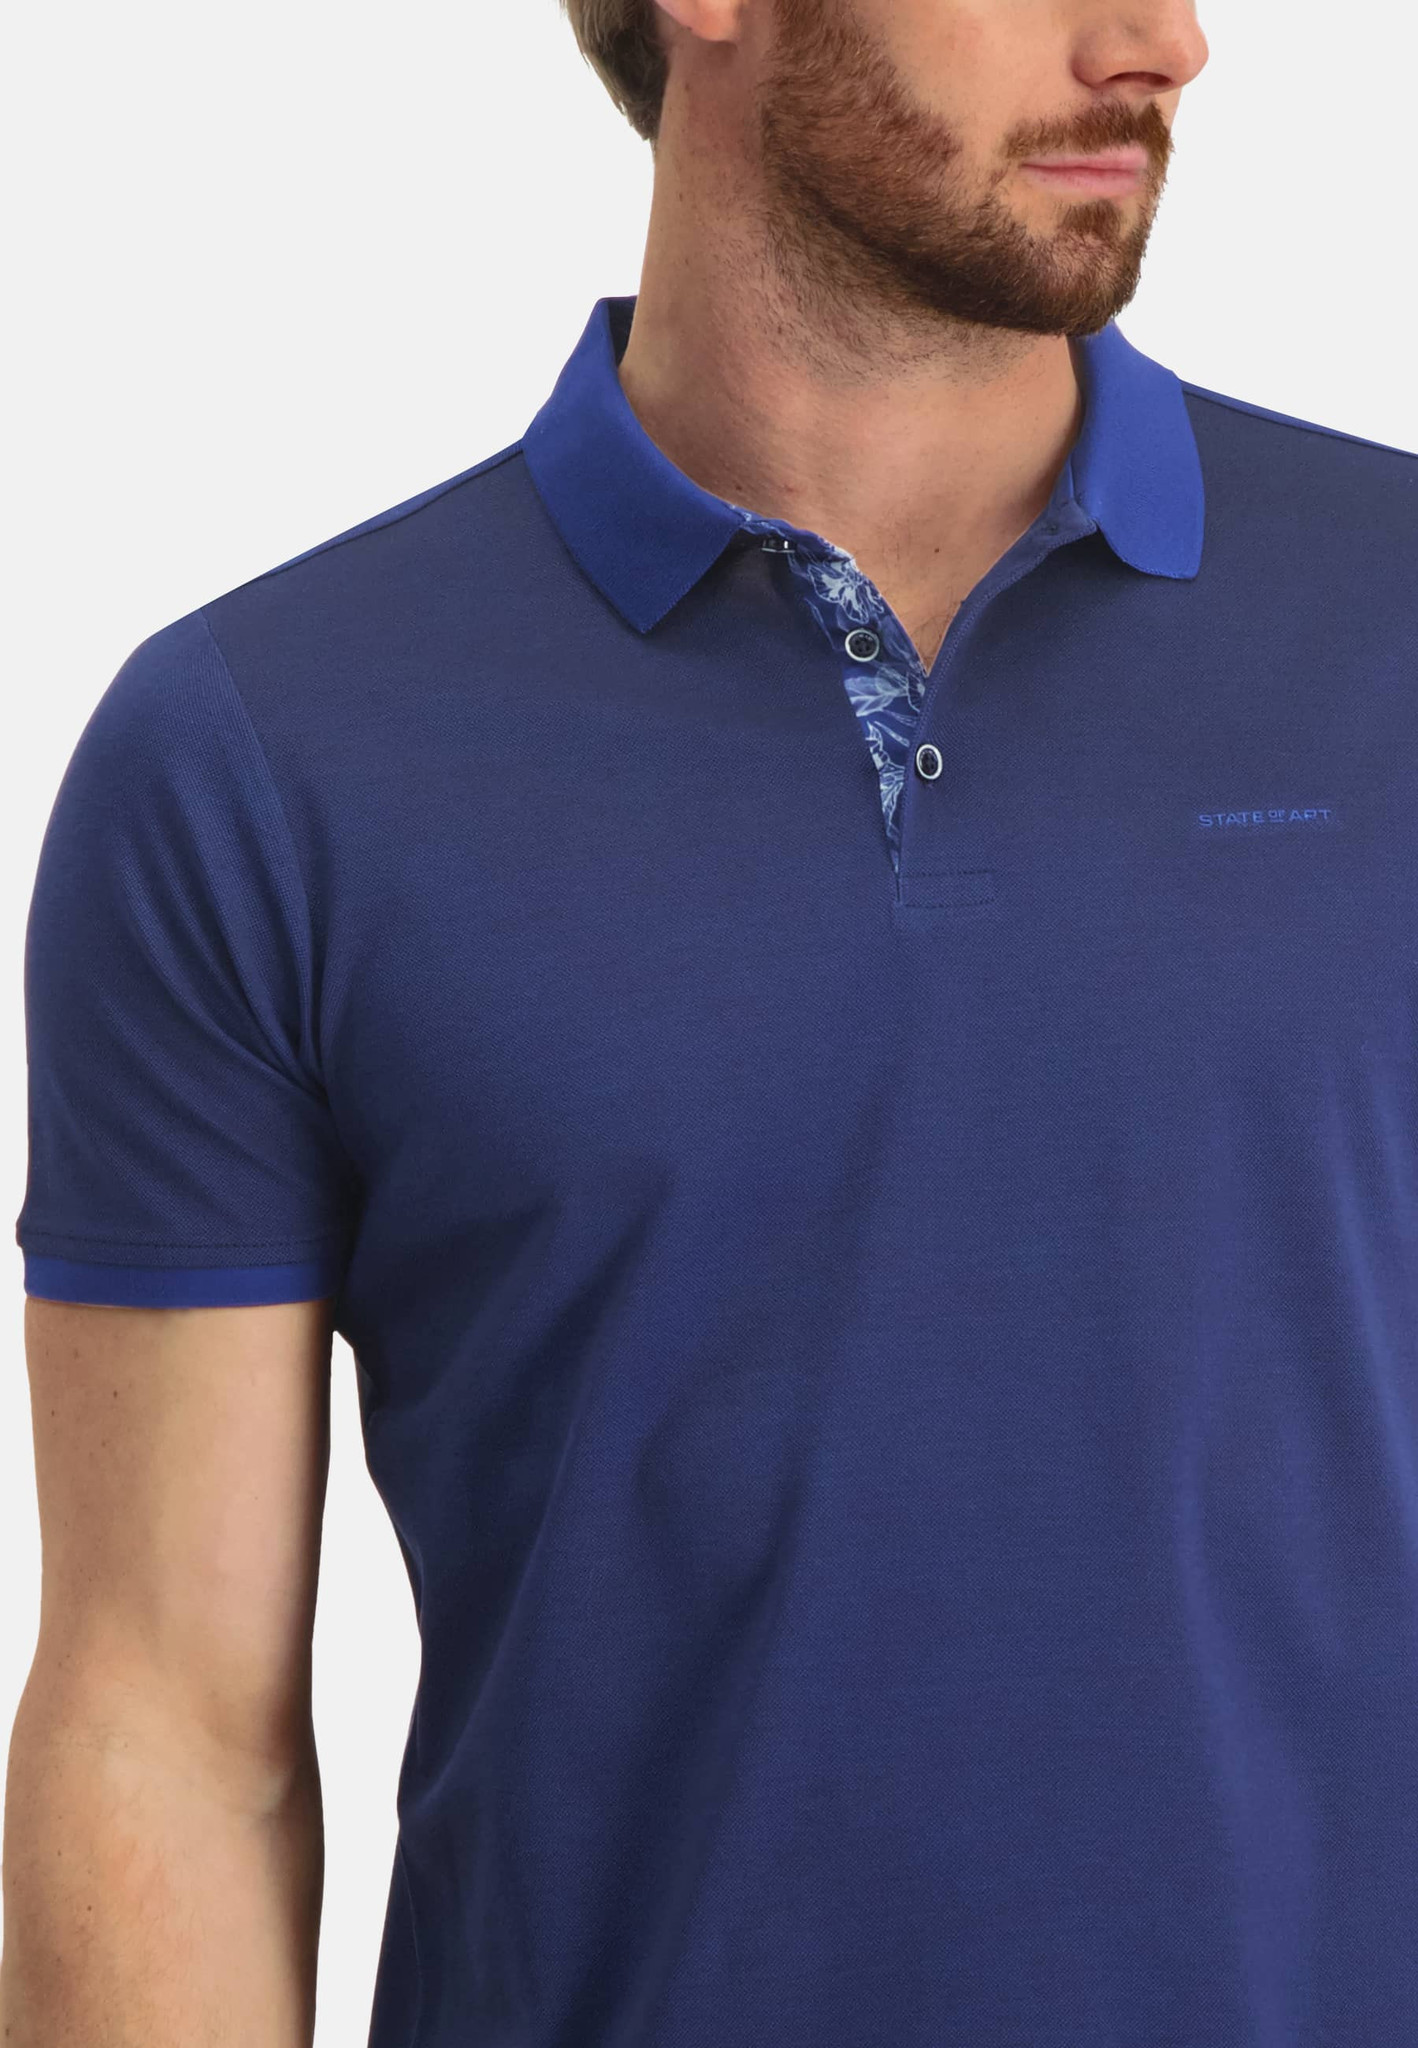 State of Art Polo State of Art 461-11575-8957